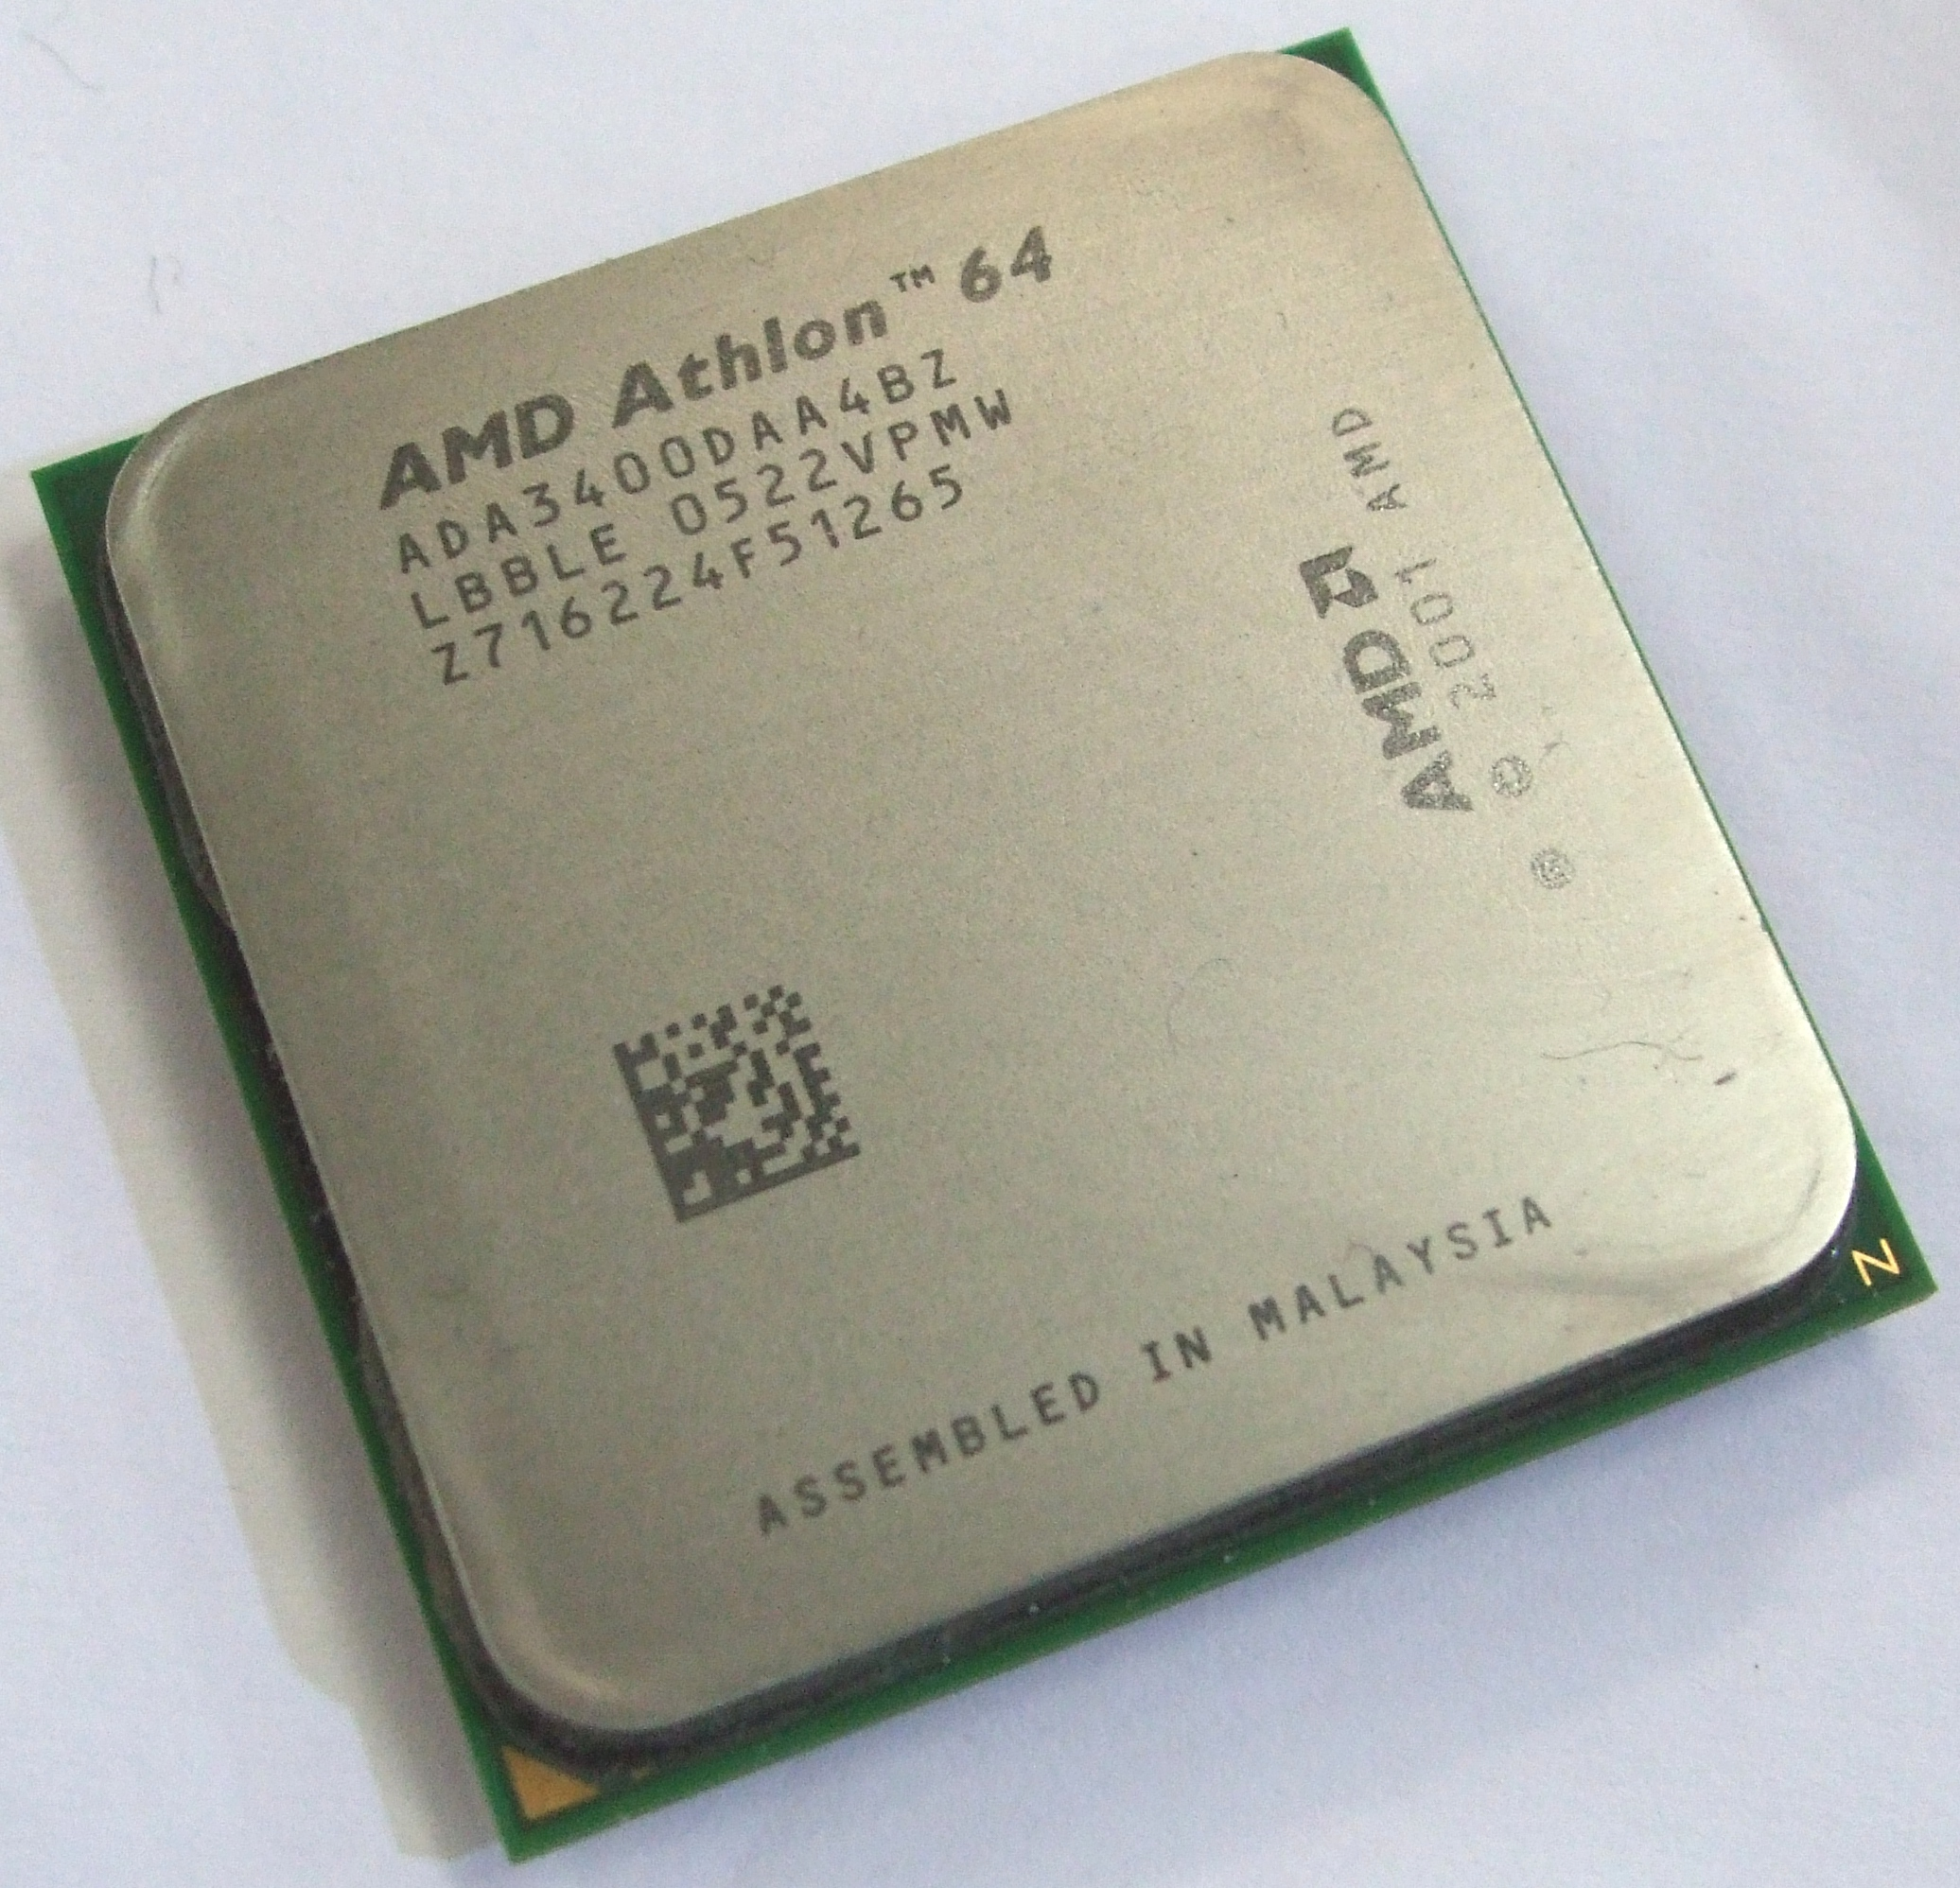 AMD Athlon 64 3400+ Socket 939 Processor ADA3400DAA4BZ